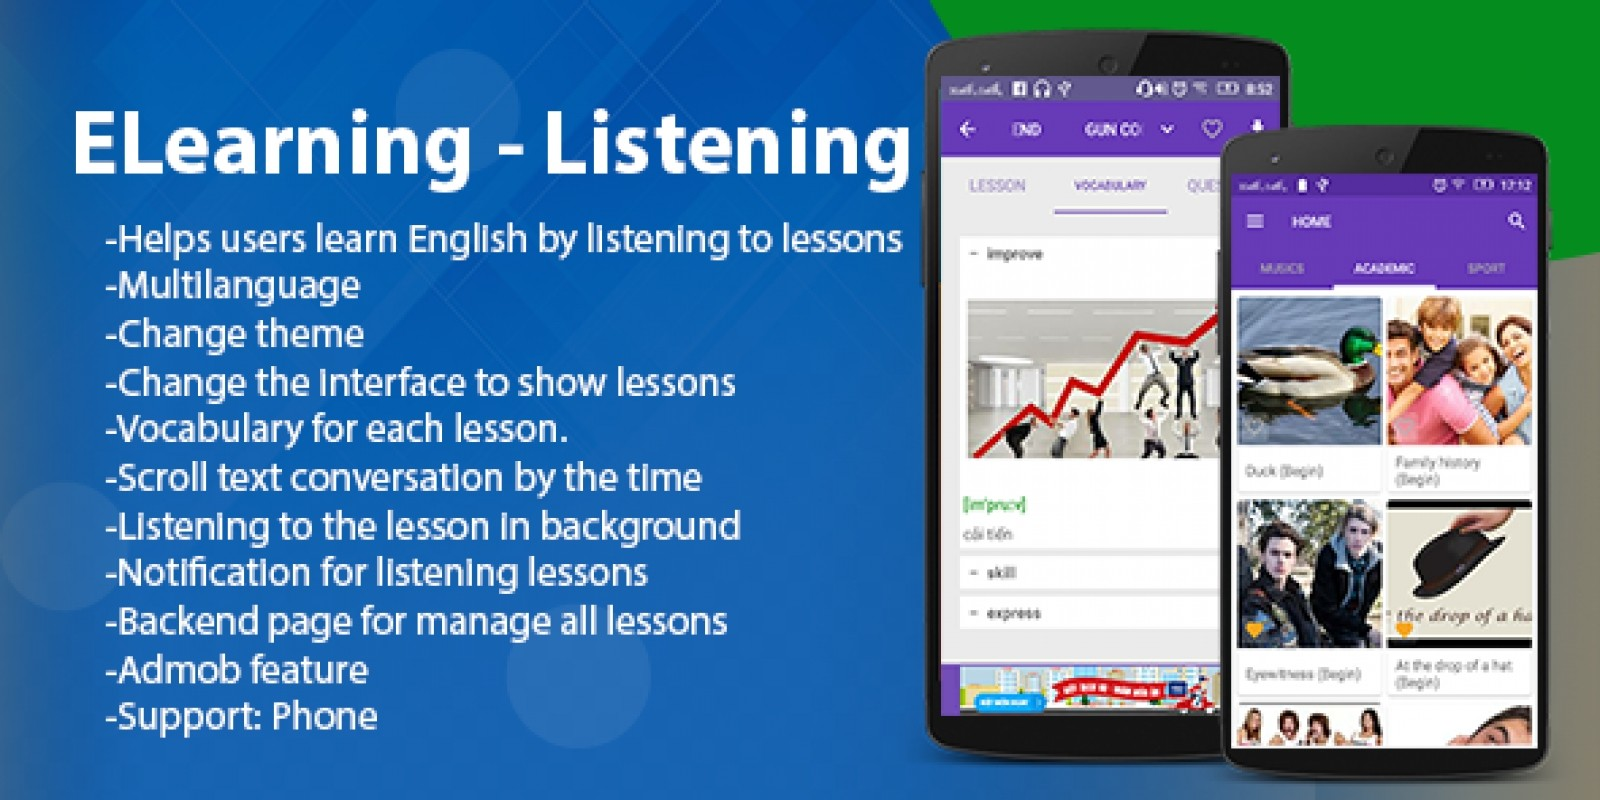 ELearning - Listening Android App With PHP Backend